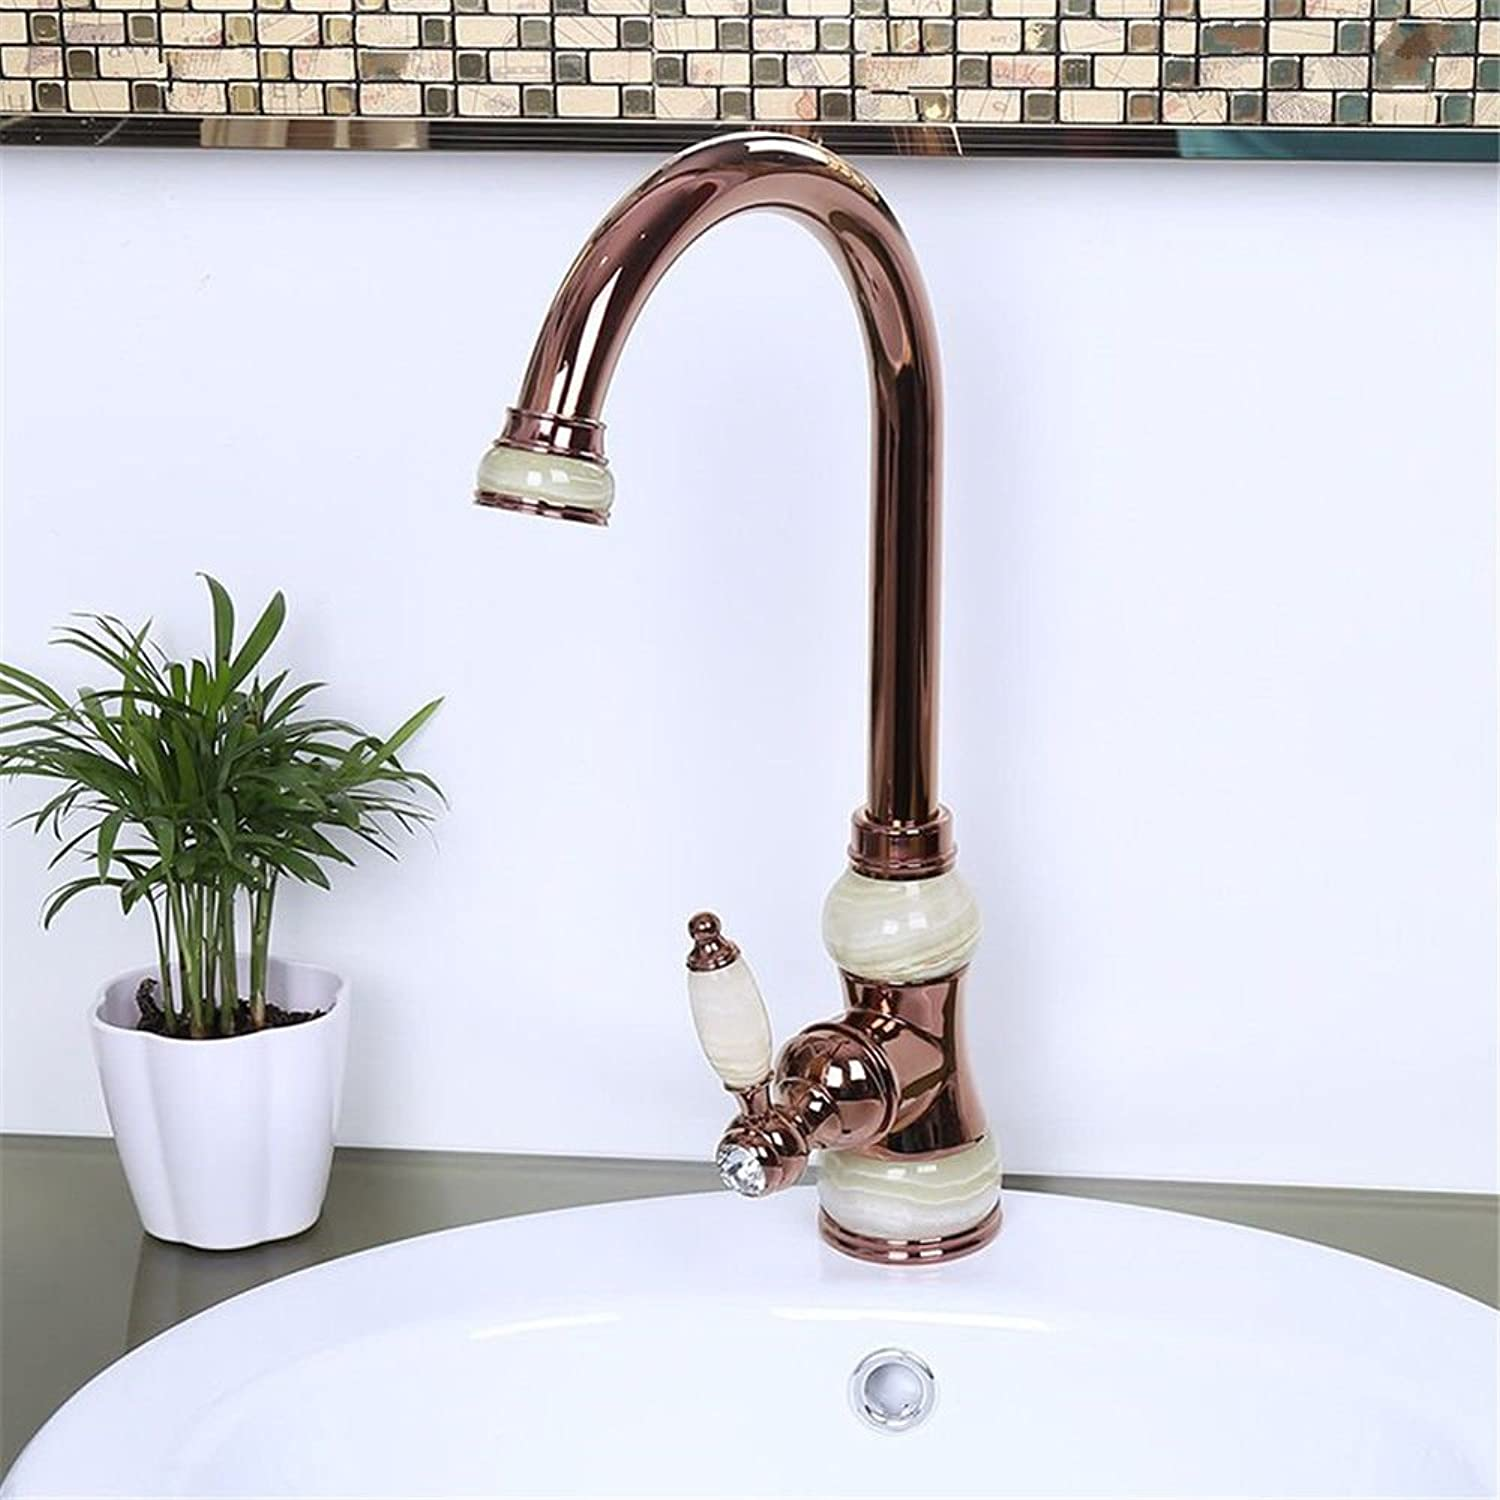 AQMMi Basin Sink Mixer Tap for Lavatory Antique Hot and Cold Water Valve Brass 360°Swivel gold Single Lever Bathroom Vanity Sink Faucet